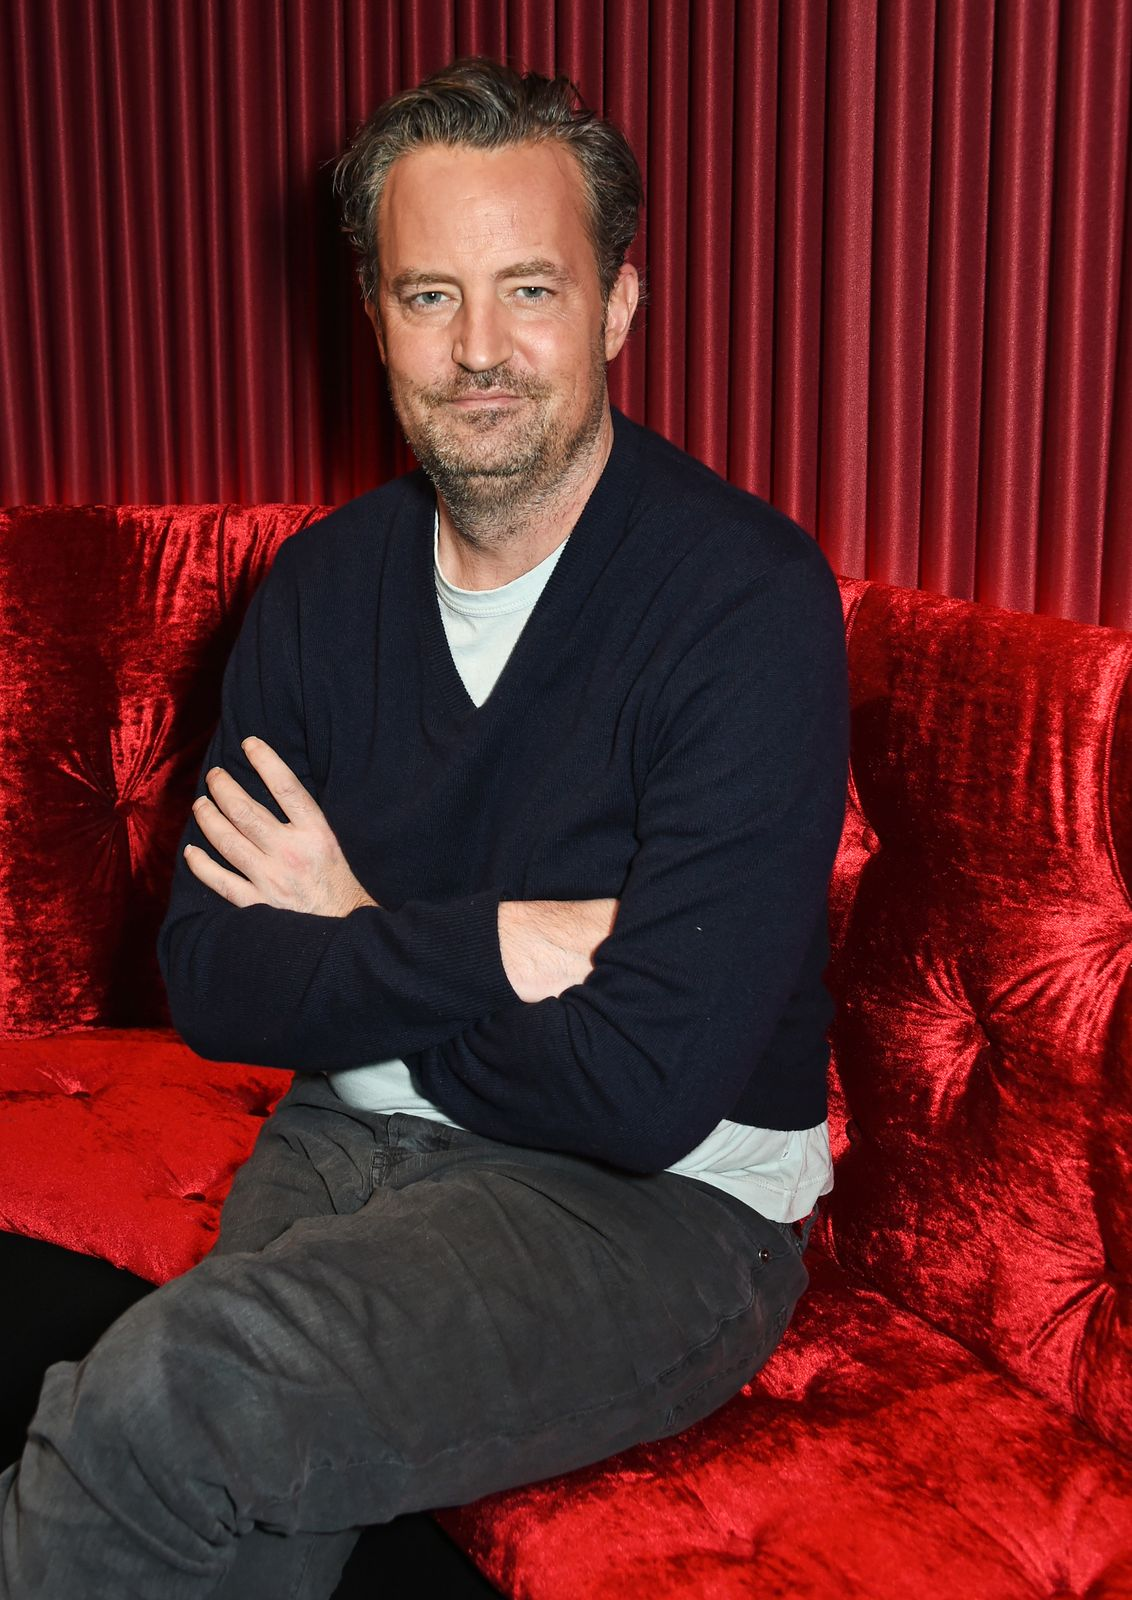 """Matthew Perry poses at a photocall for the play """"The End Of Longing"""" on February 8, 2016, in London, England   Photo:David M. Benett/Dave Benett/Getty Images"""